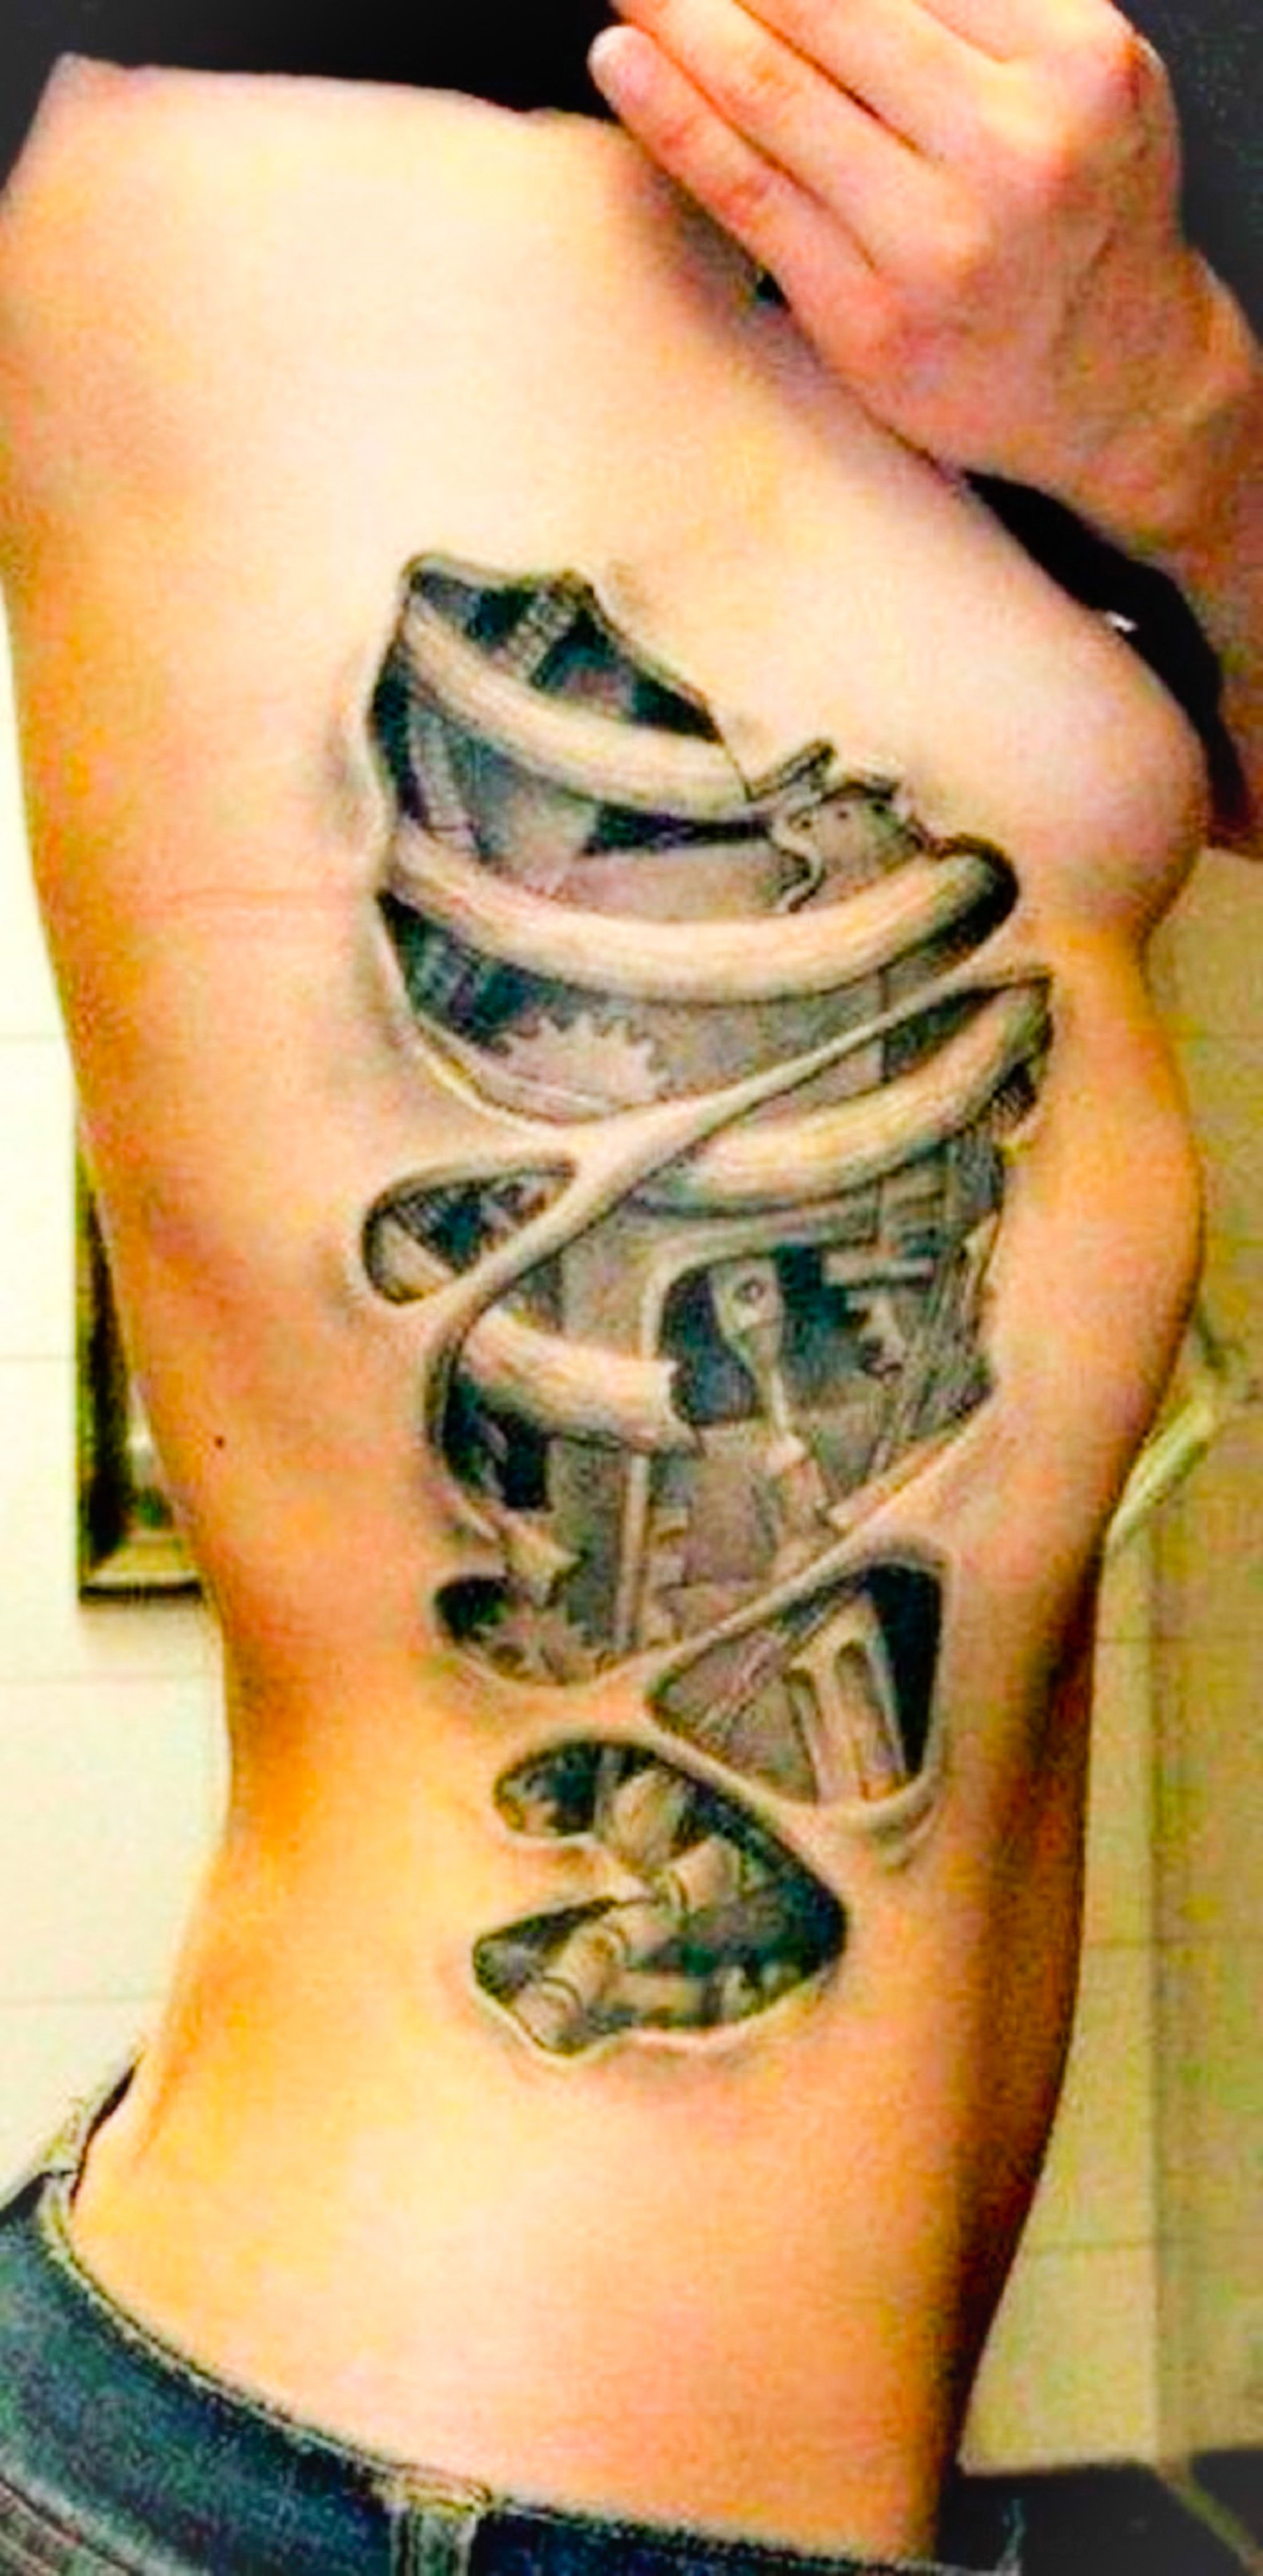 Biomechanical tattoo of rib side gears black grey for Initial tattoos on ribs